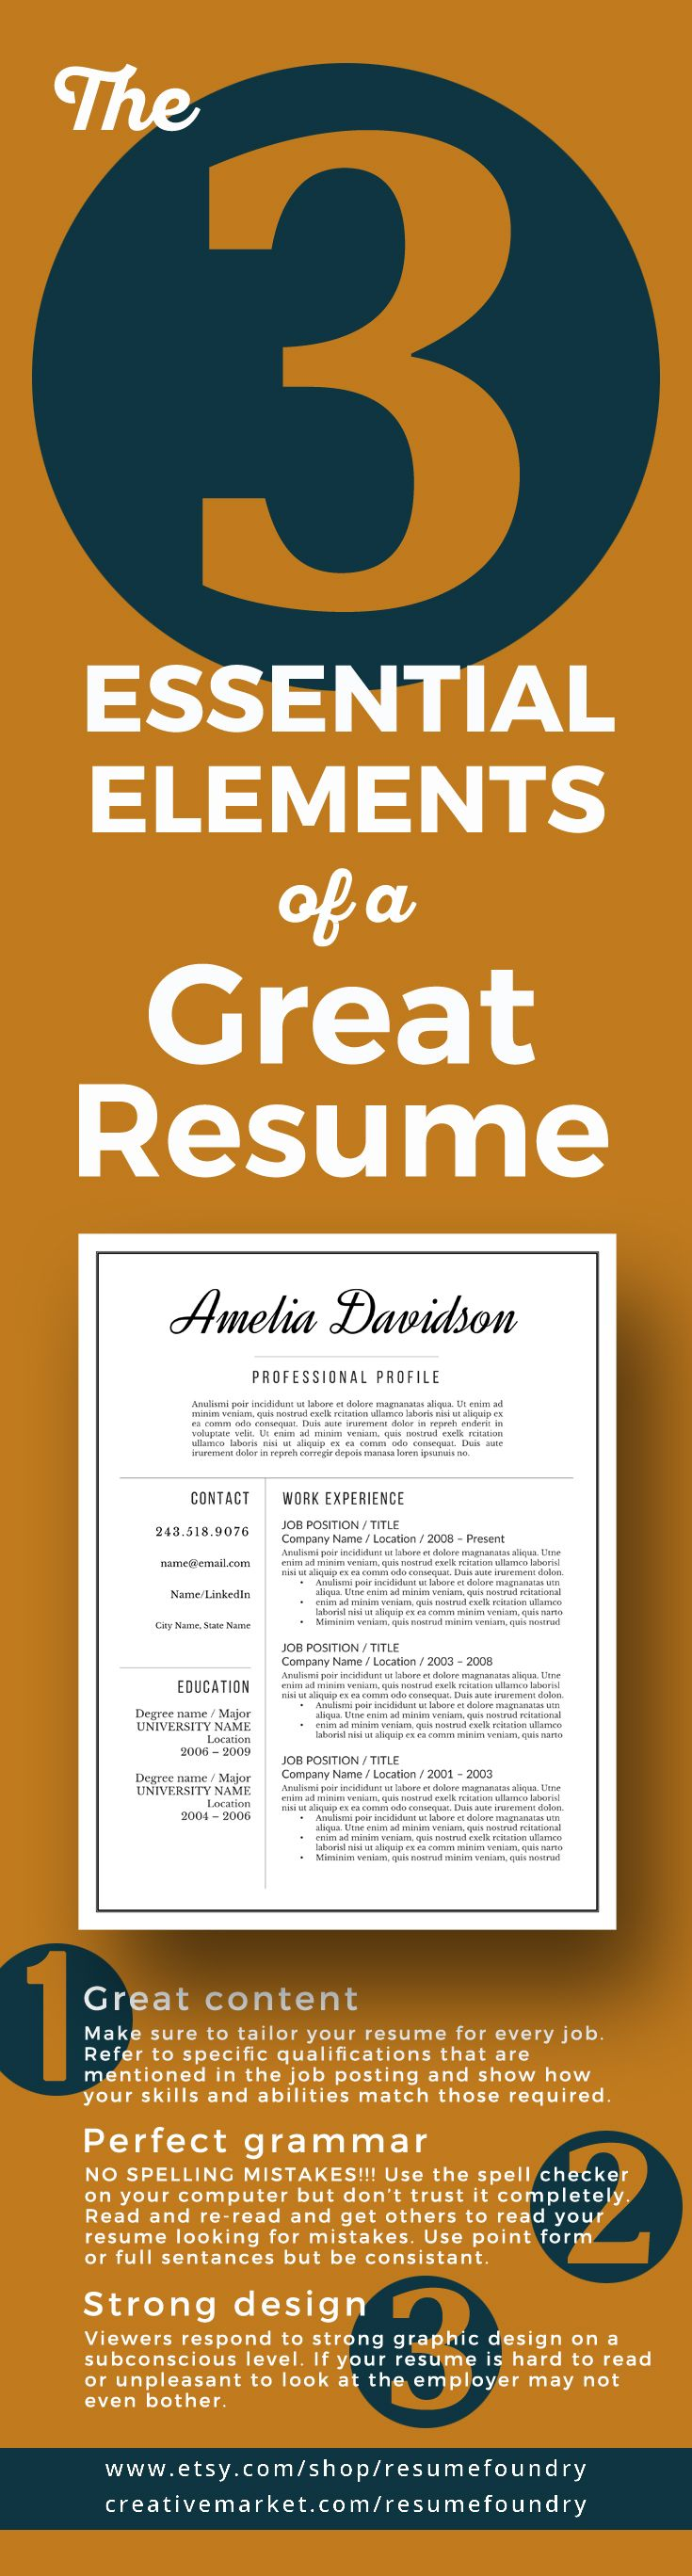 cover letter for sales manager position%0A Make sure to include these three essential elements to perfect your resume   Resume Foundry